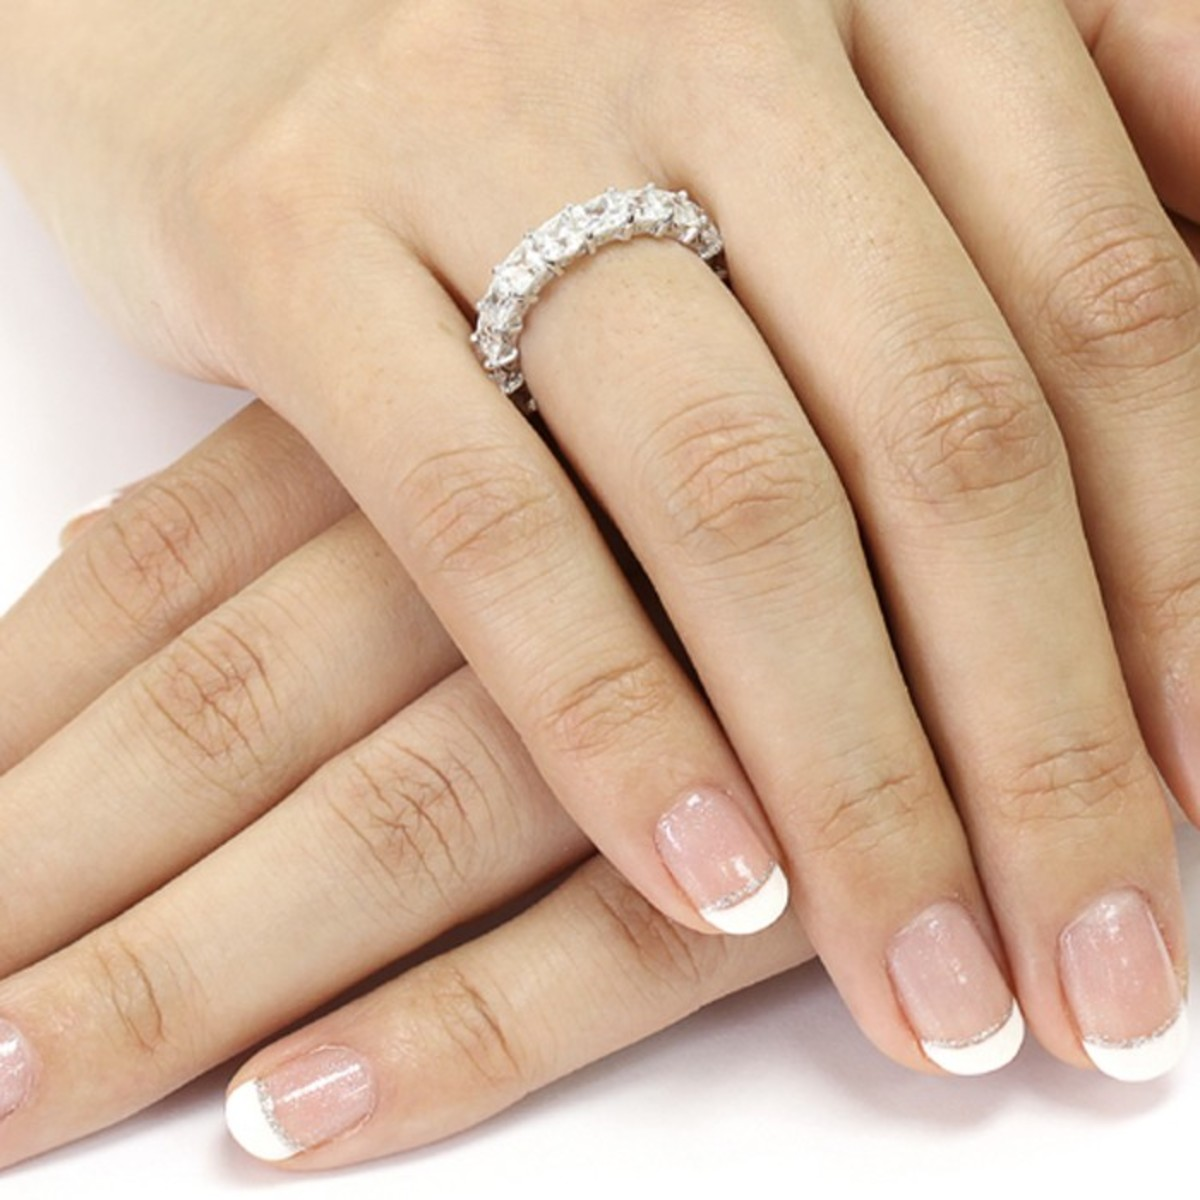 A sparkling ring.